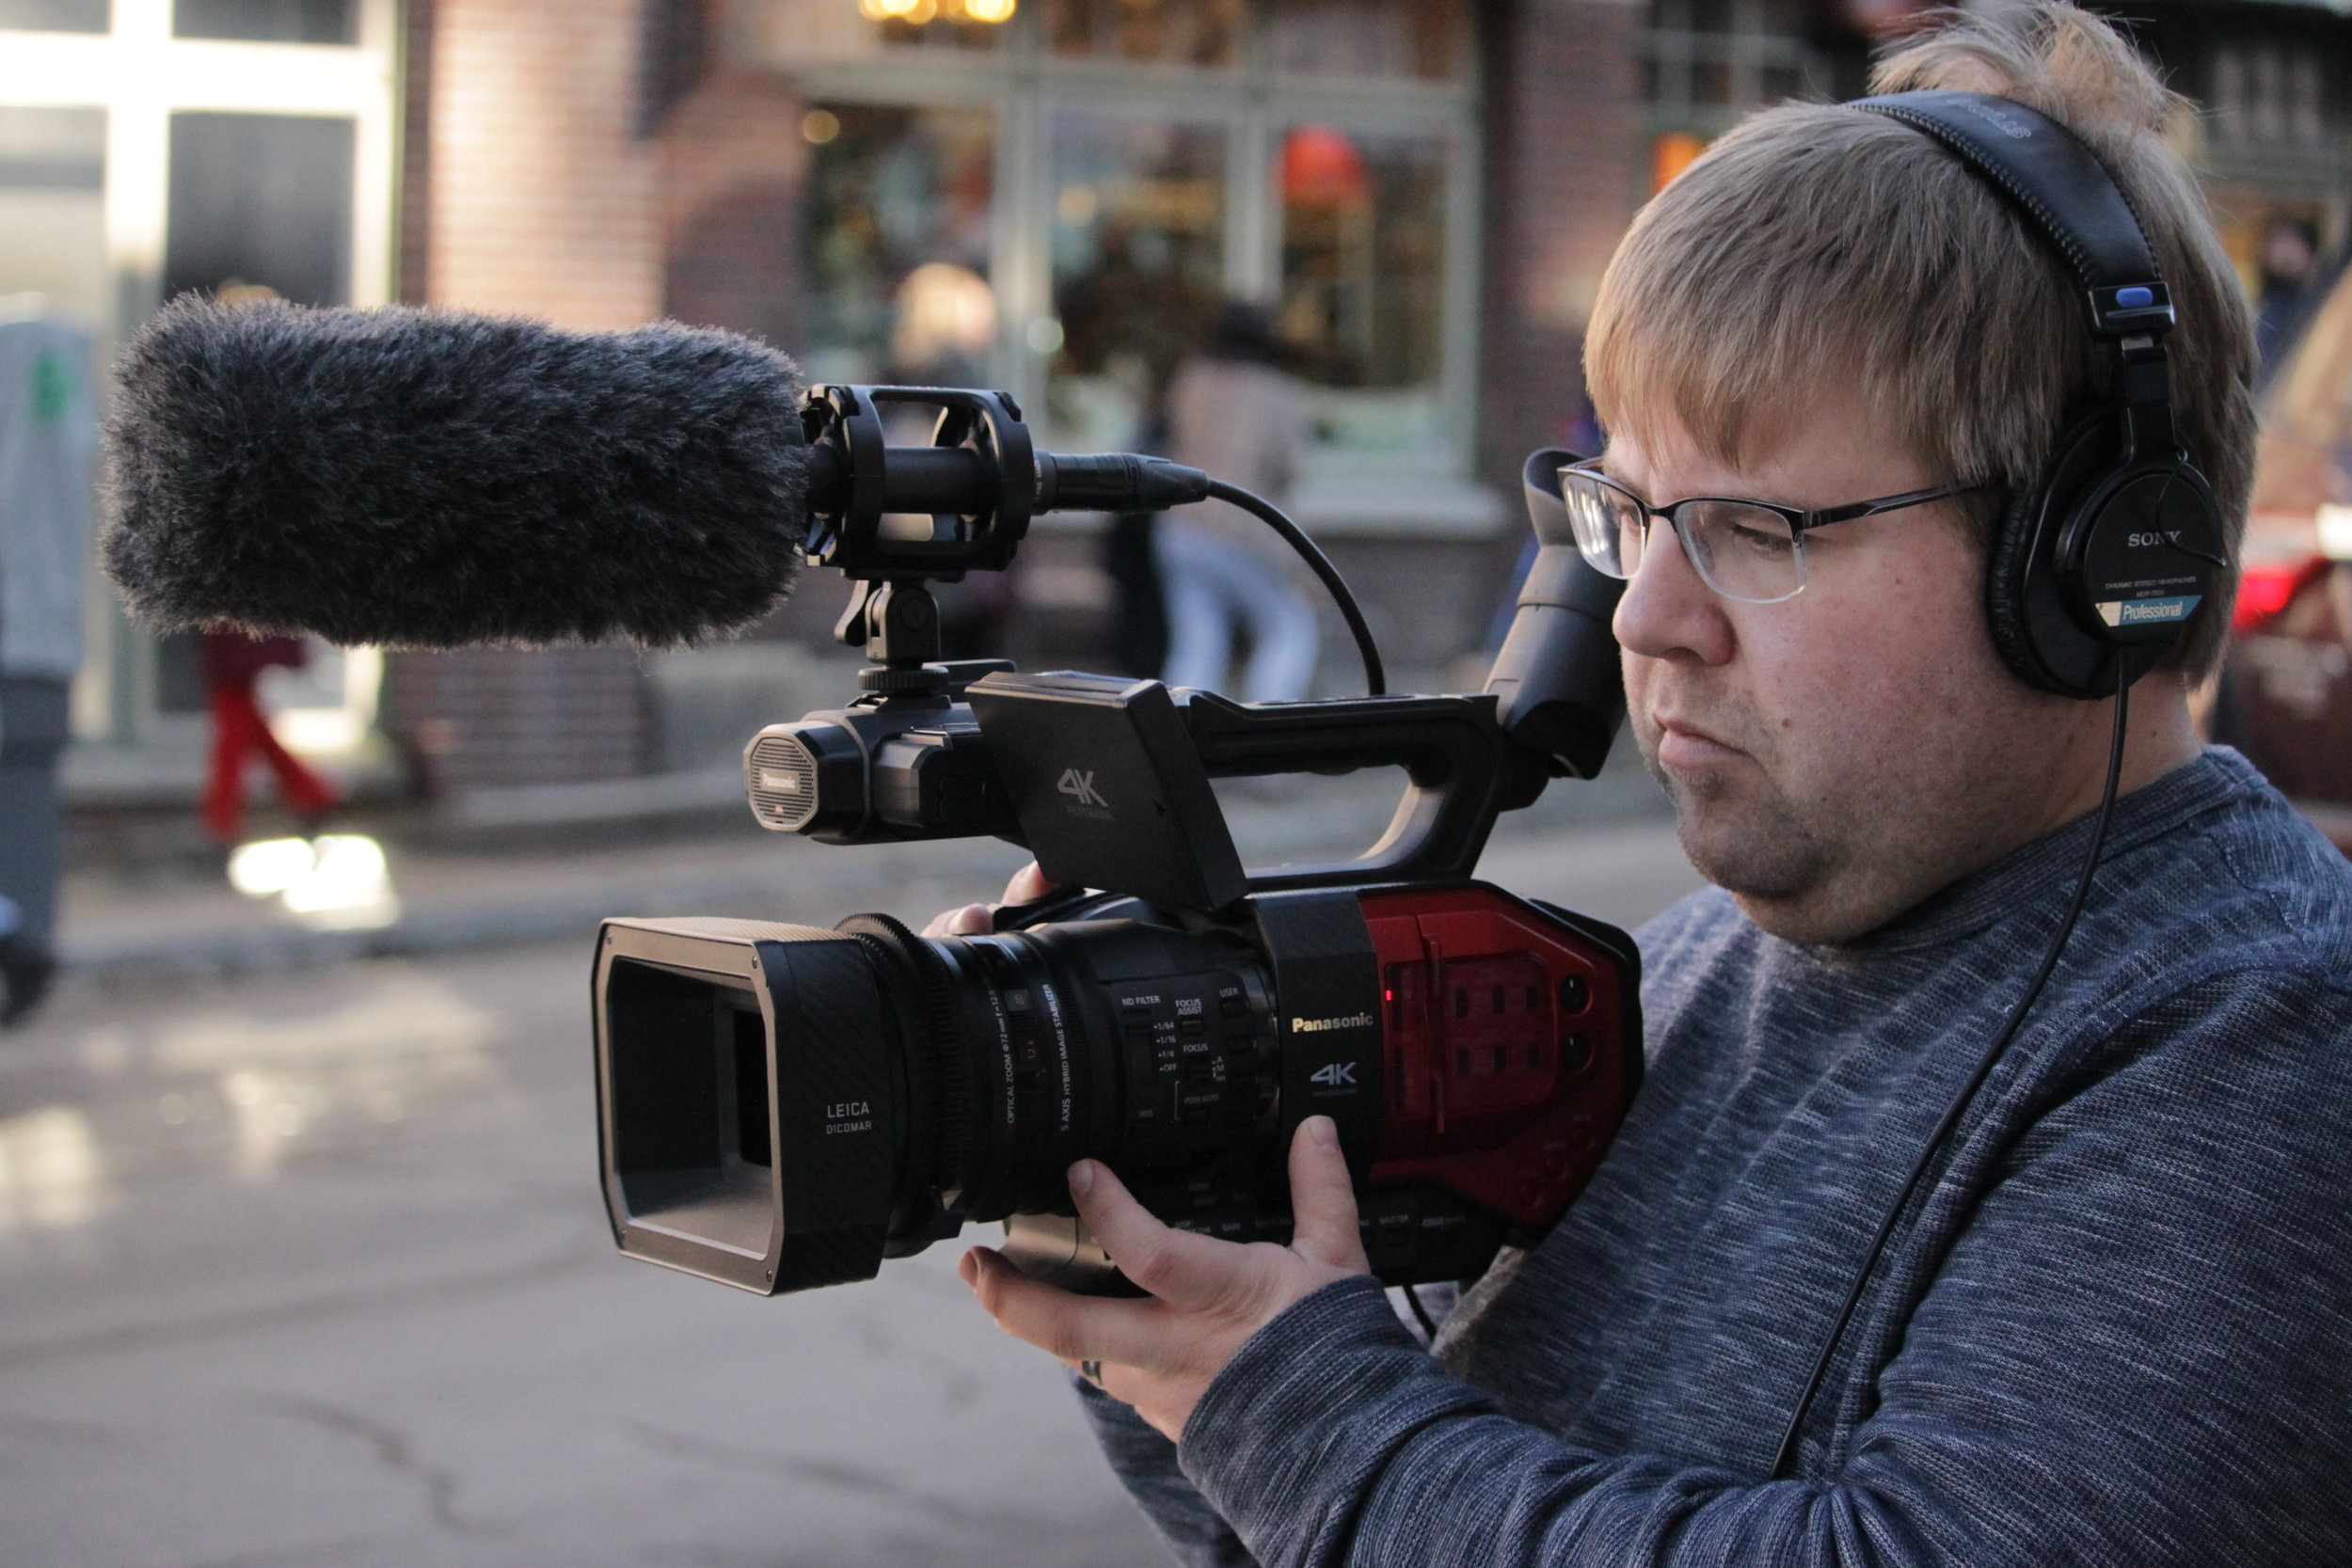 Our incredible cinematographer Brad capturing the best moments of Sundance!